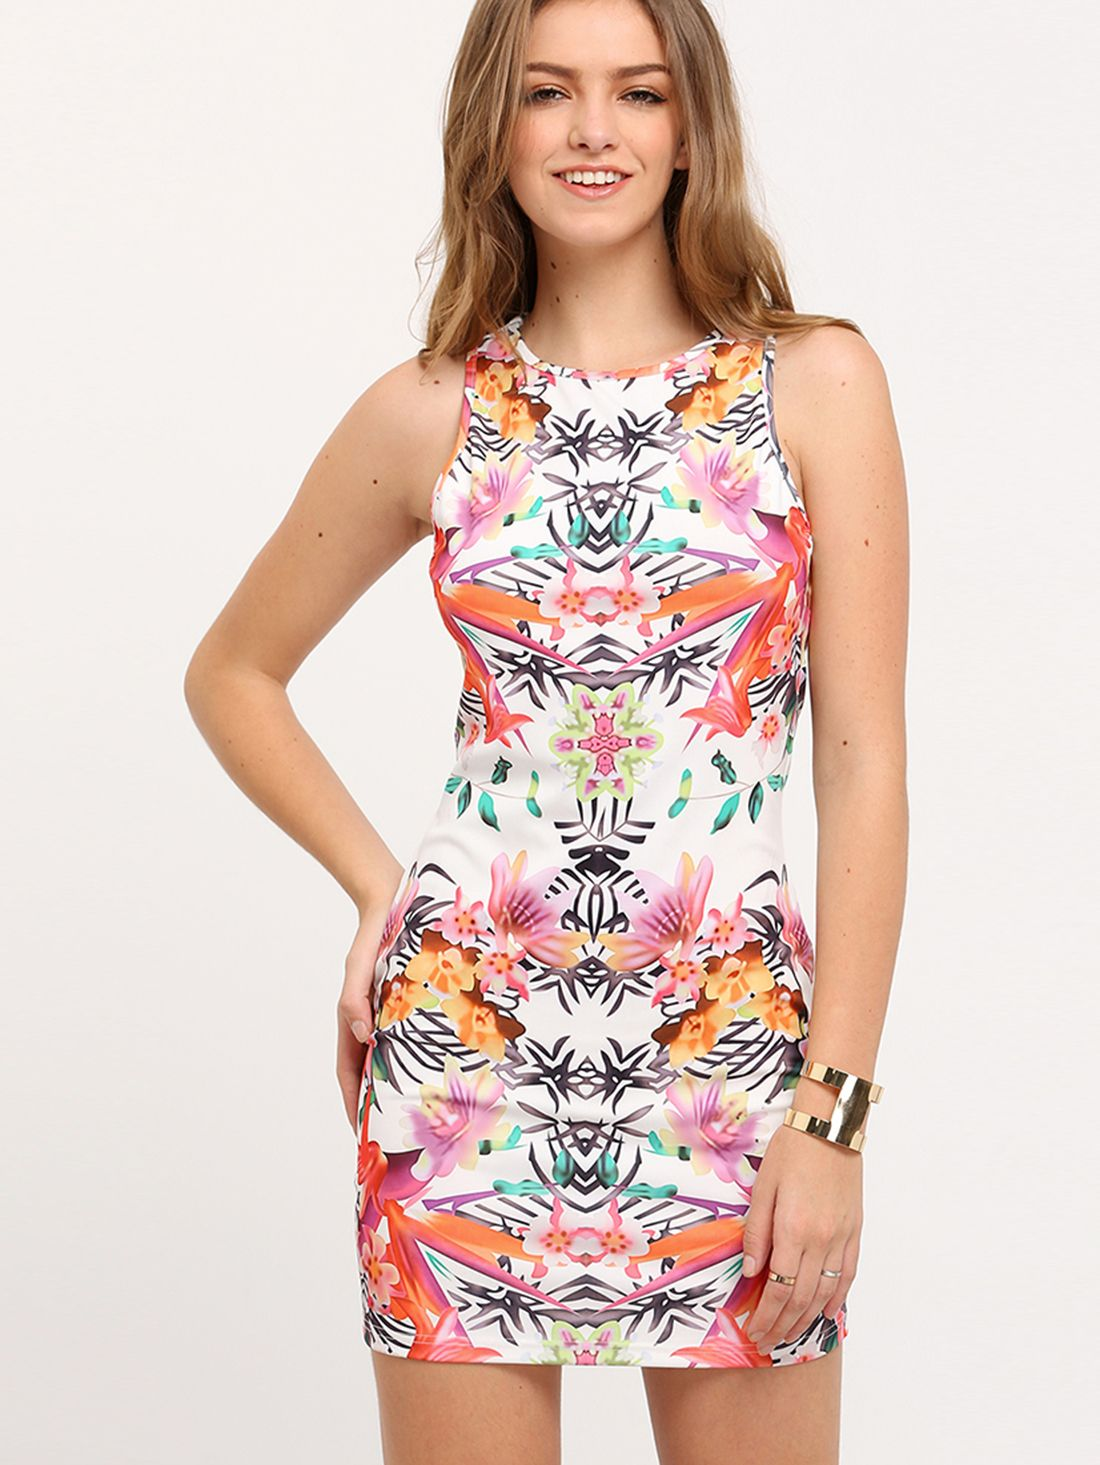 ¡Cómpralo ya!. Multicolor Sleeveless Flower Floral Print Dress. Multicolor Sexy Polyester Round Neck Sleeveless Sheath Short Floral Fabric has no stretch Spring Tank Dresses. , vestidoinformal, casual, informales, informal, day, kleidcasual, vestidoinformal, robeinformelle, vestitoinformale, día. Vestido informal  de mujer   de SheIn.